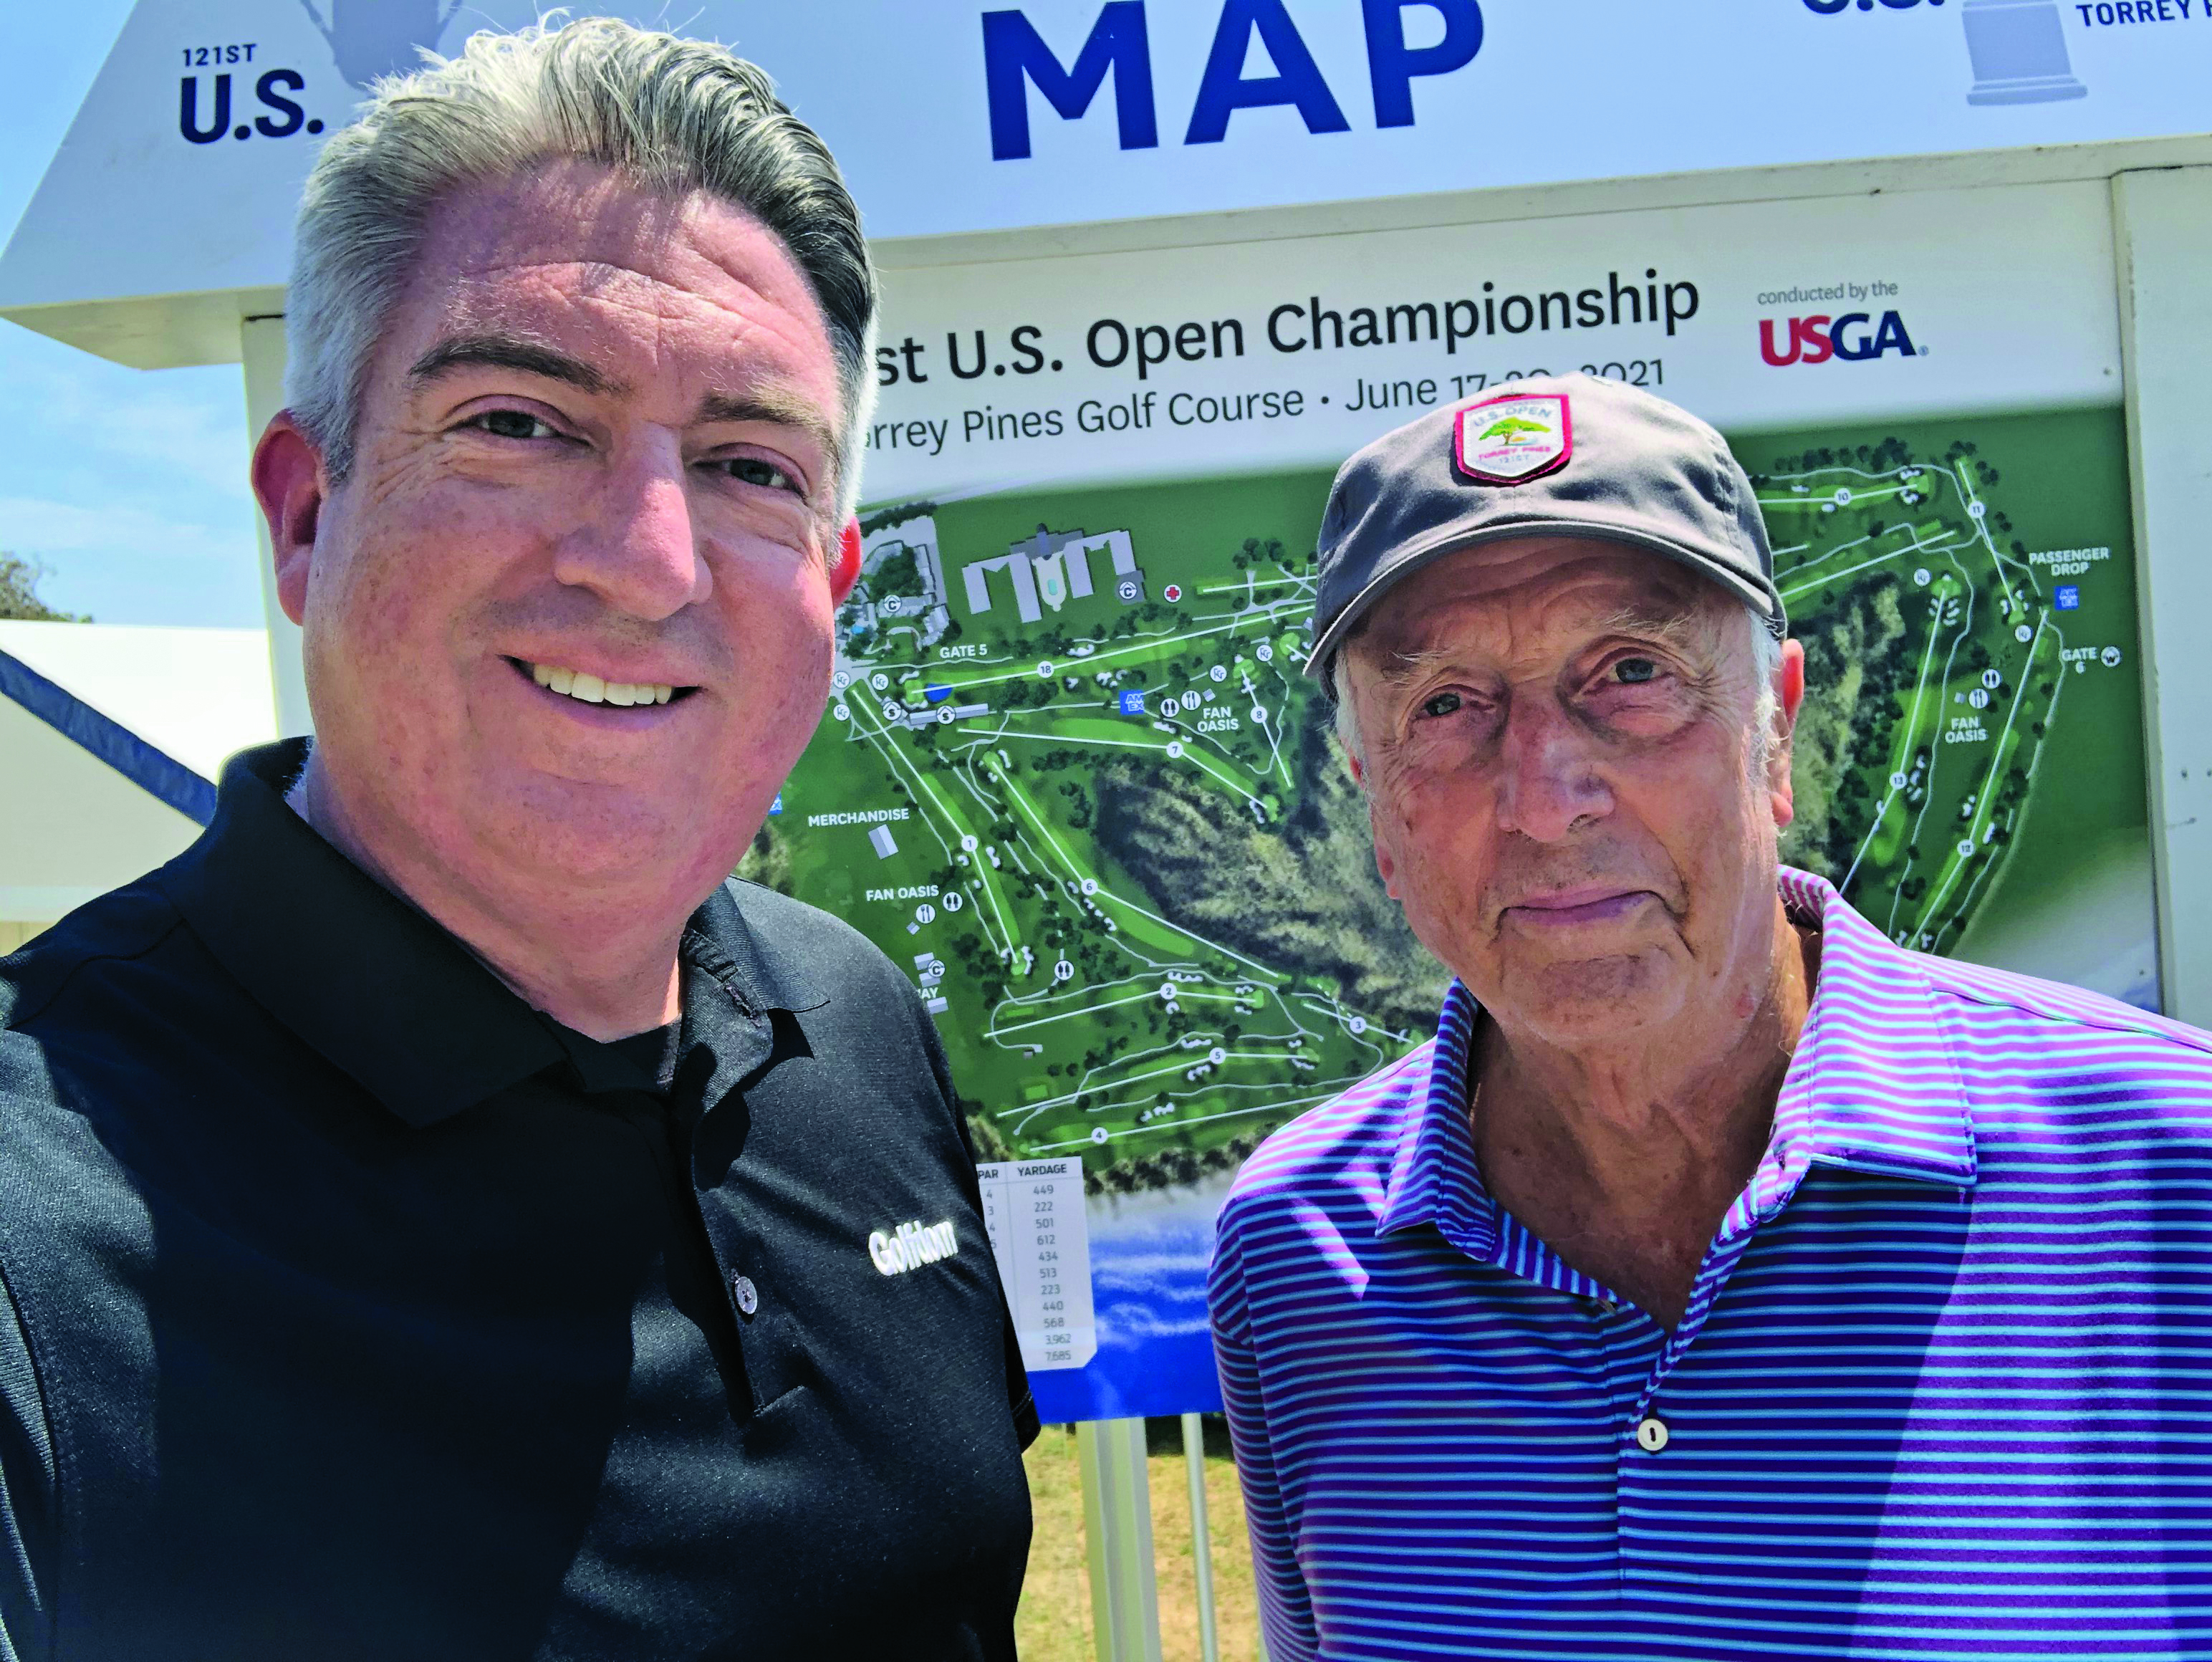 It's good to see these two together again: longtime friends Seth Jones (left), Golfdom editor-in-chief alongside the Open Doctor, Rees Jones. (Photo: Golfdom Staff)